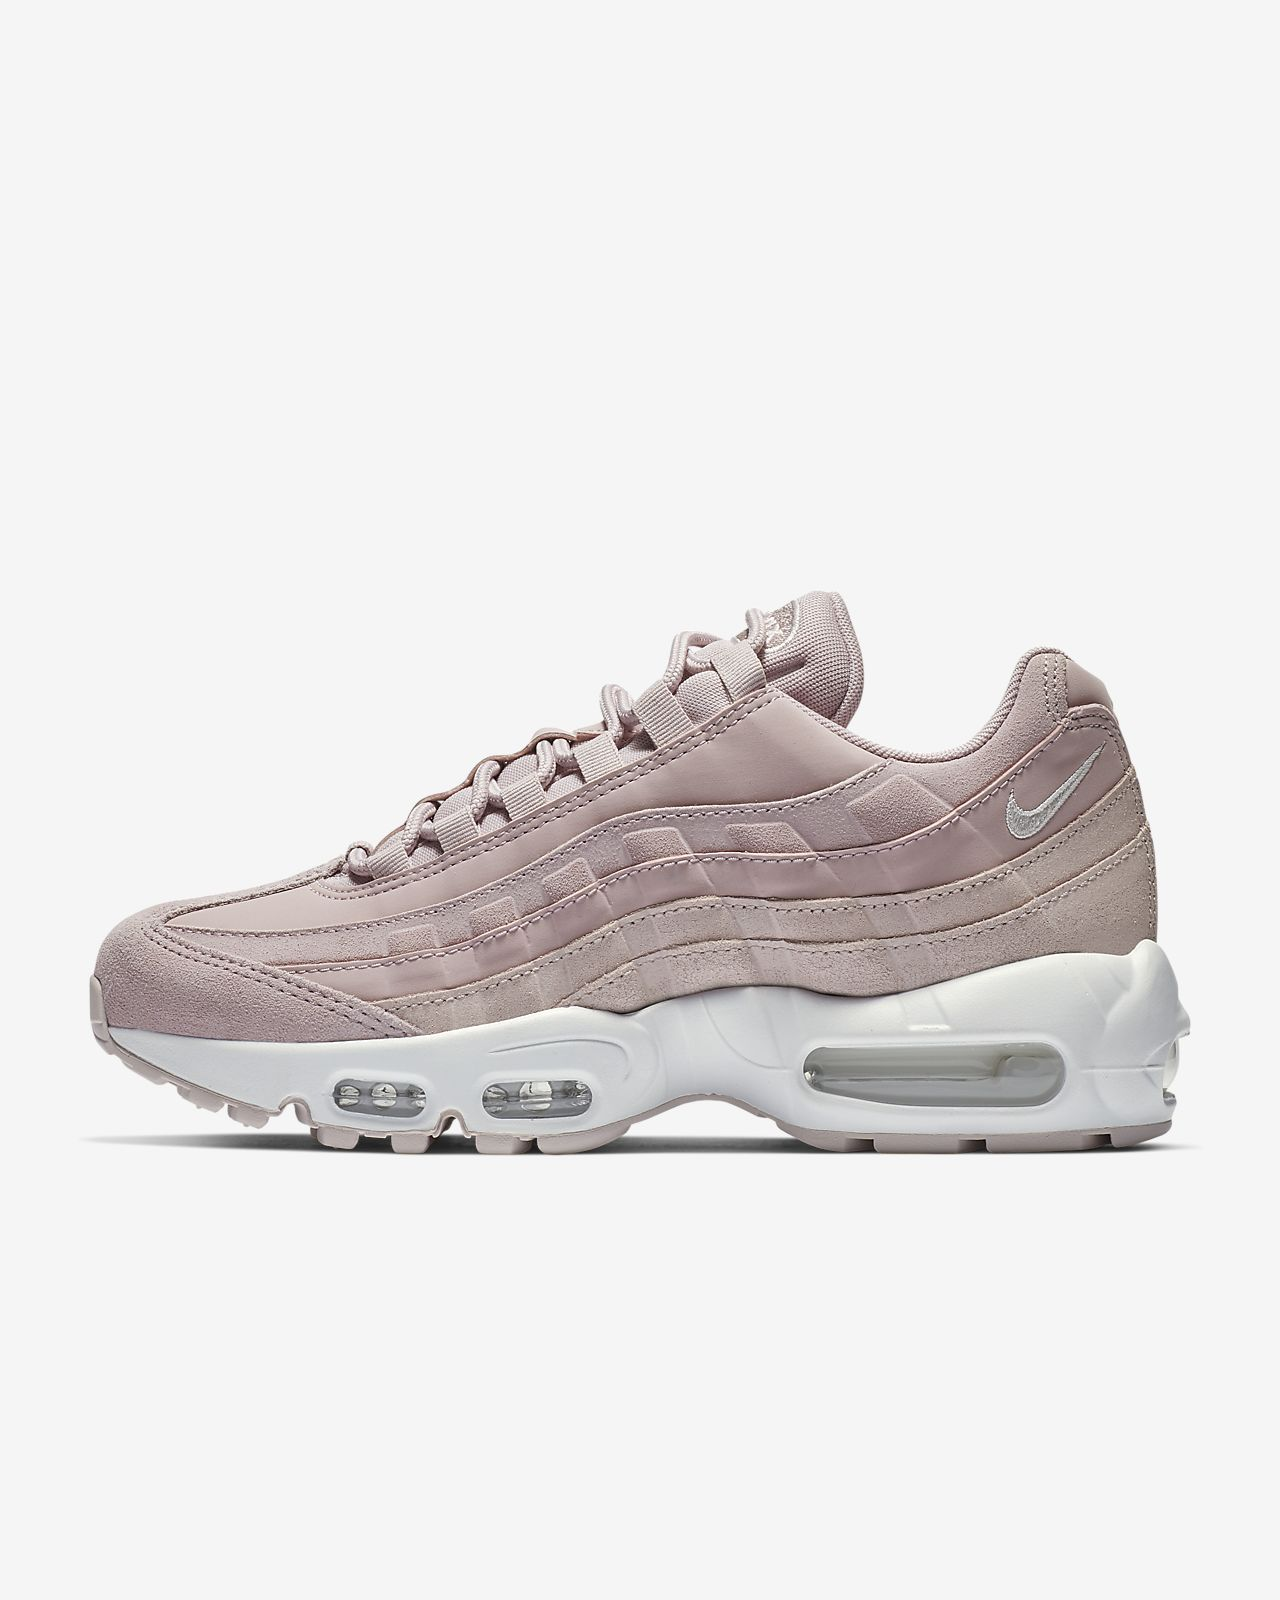 93a796cff310 Nike Air Max 95 Premium Women s Shoe. Nike.com GB